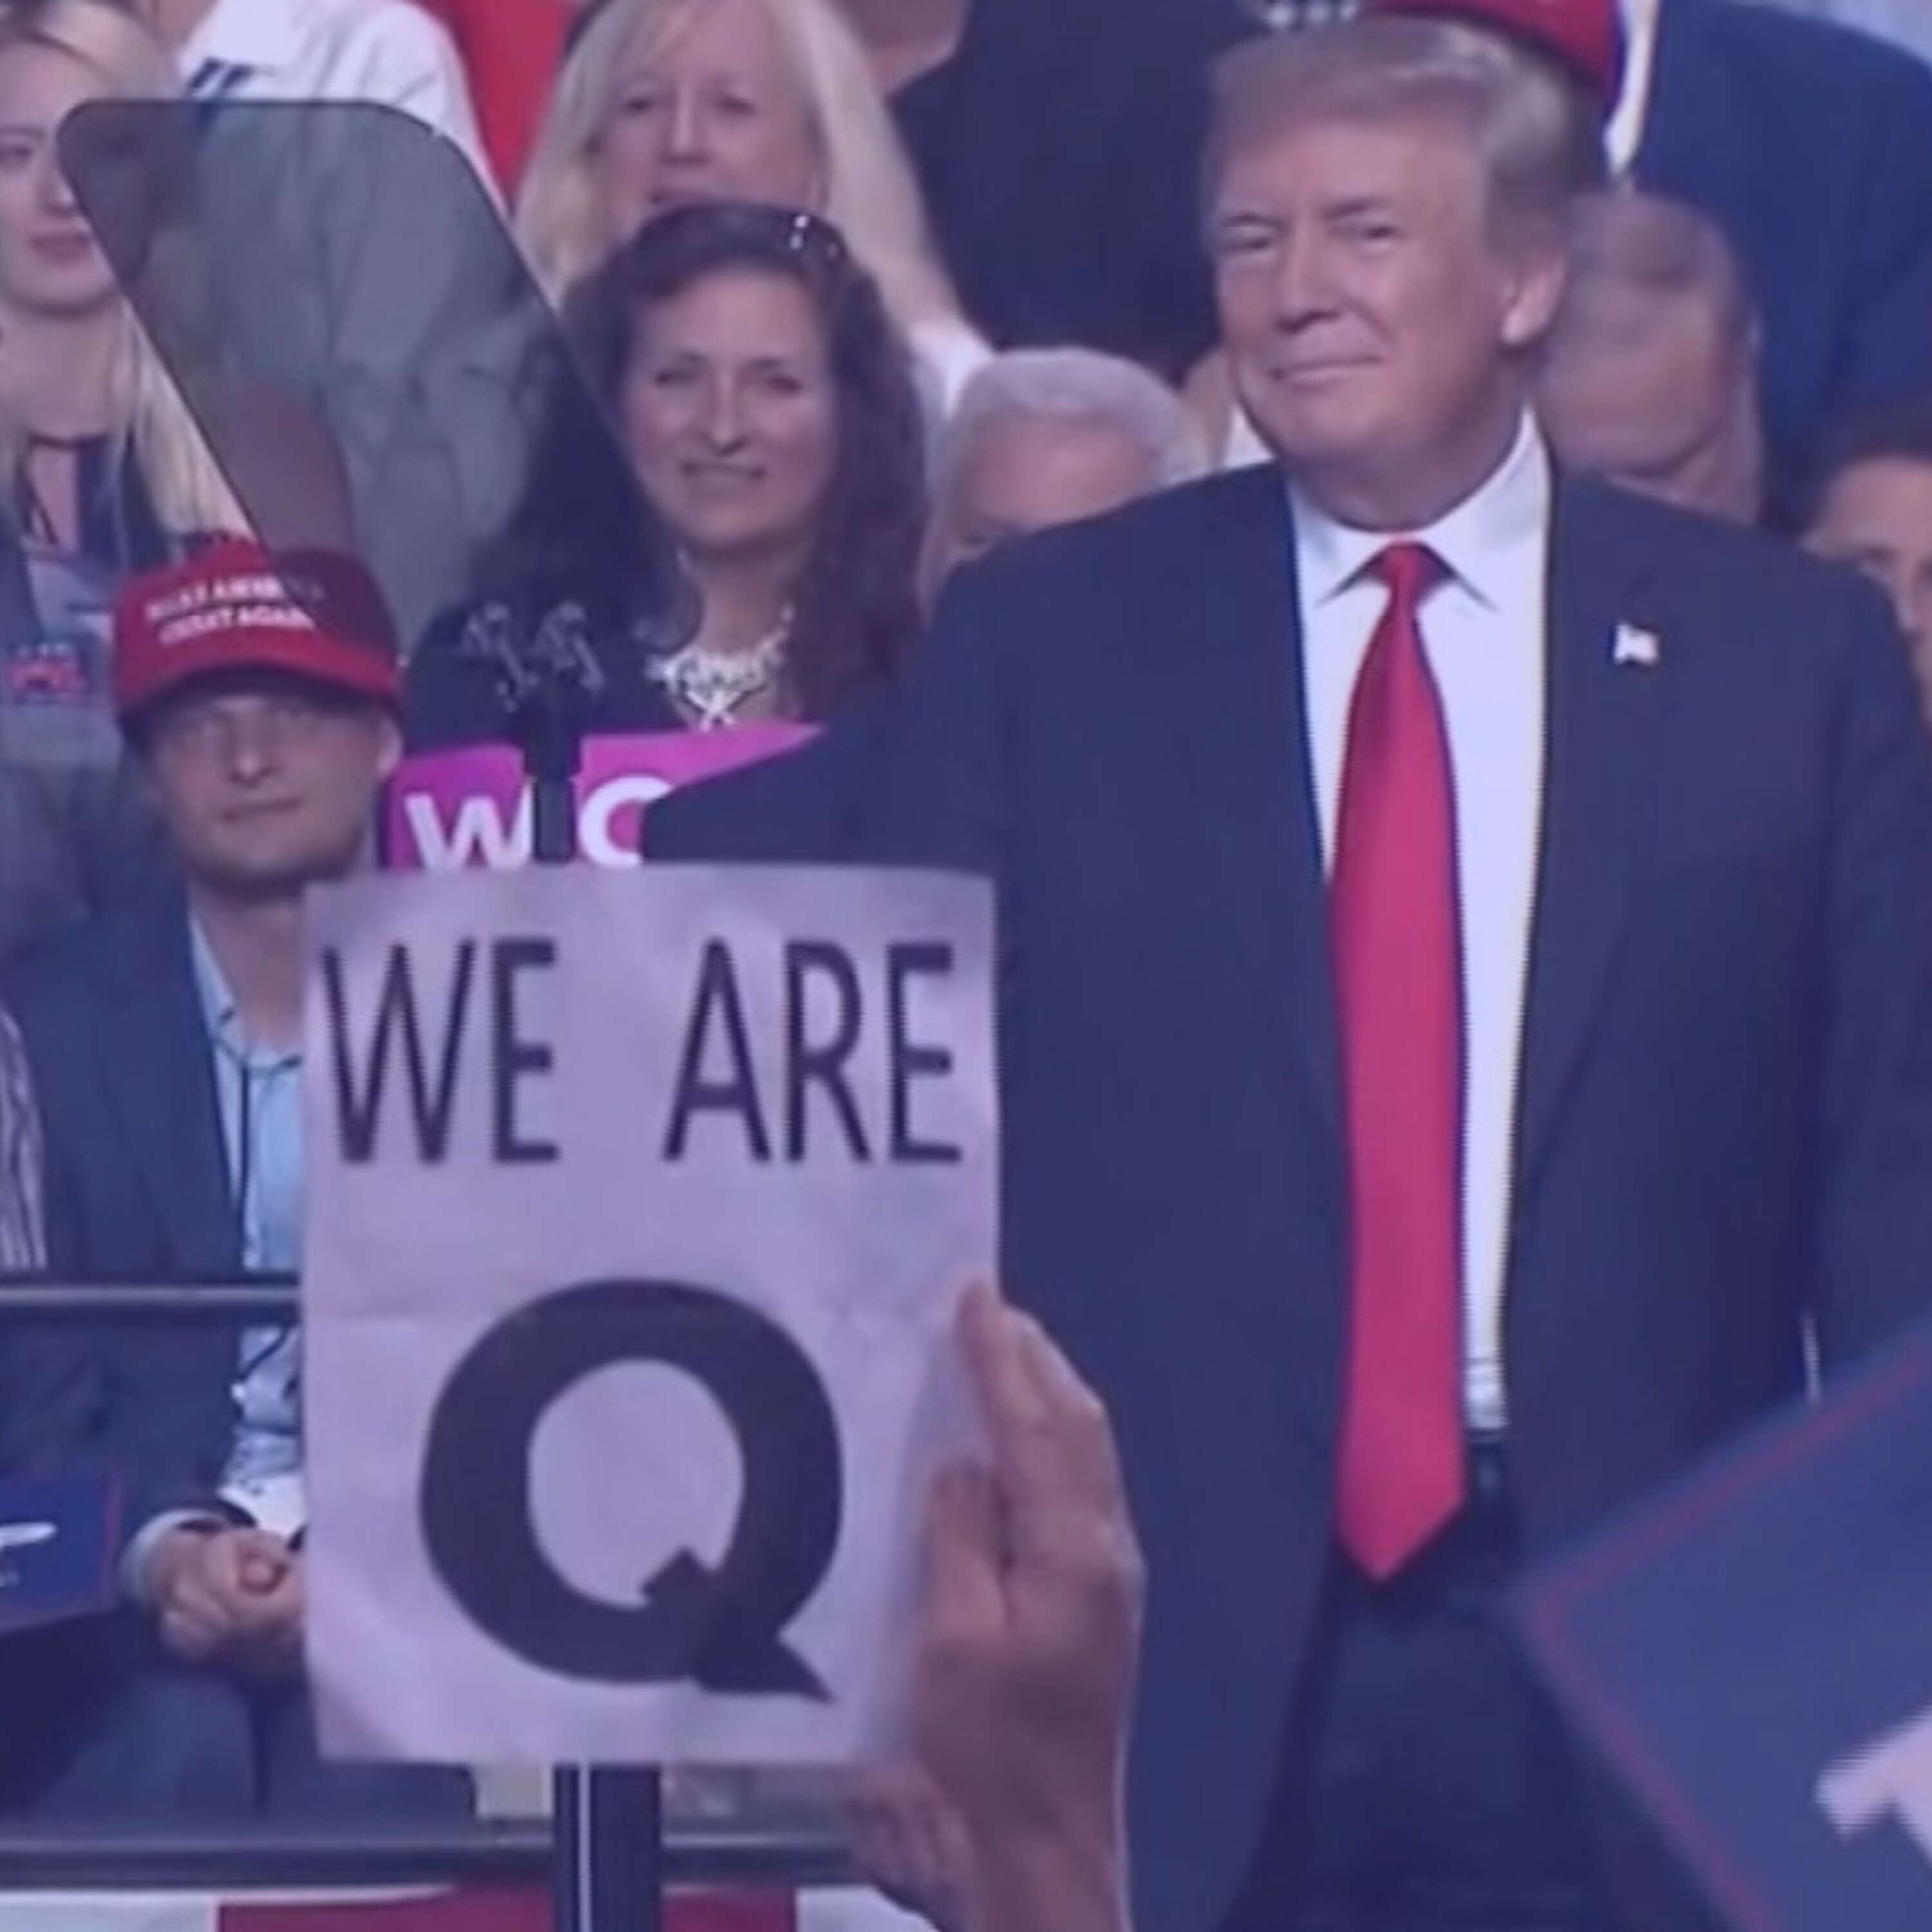 QAnon | America's Most Dangerous Conspiracy Theory?